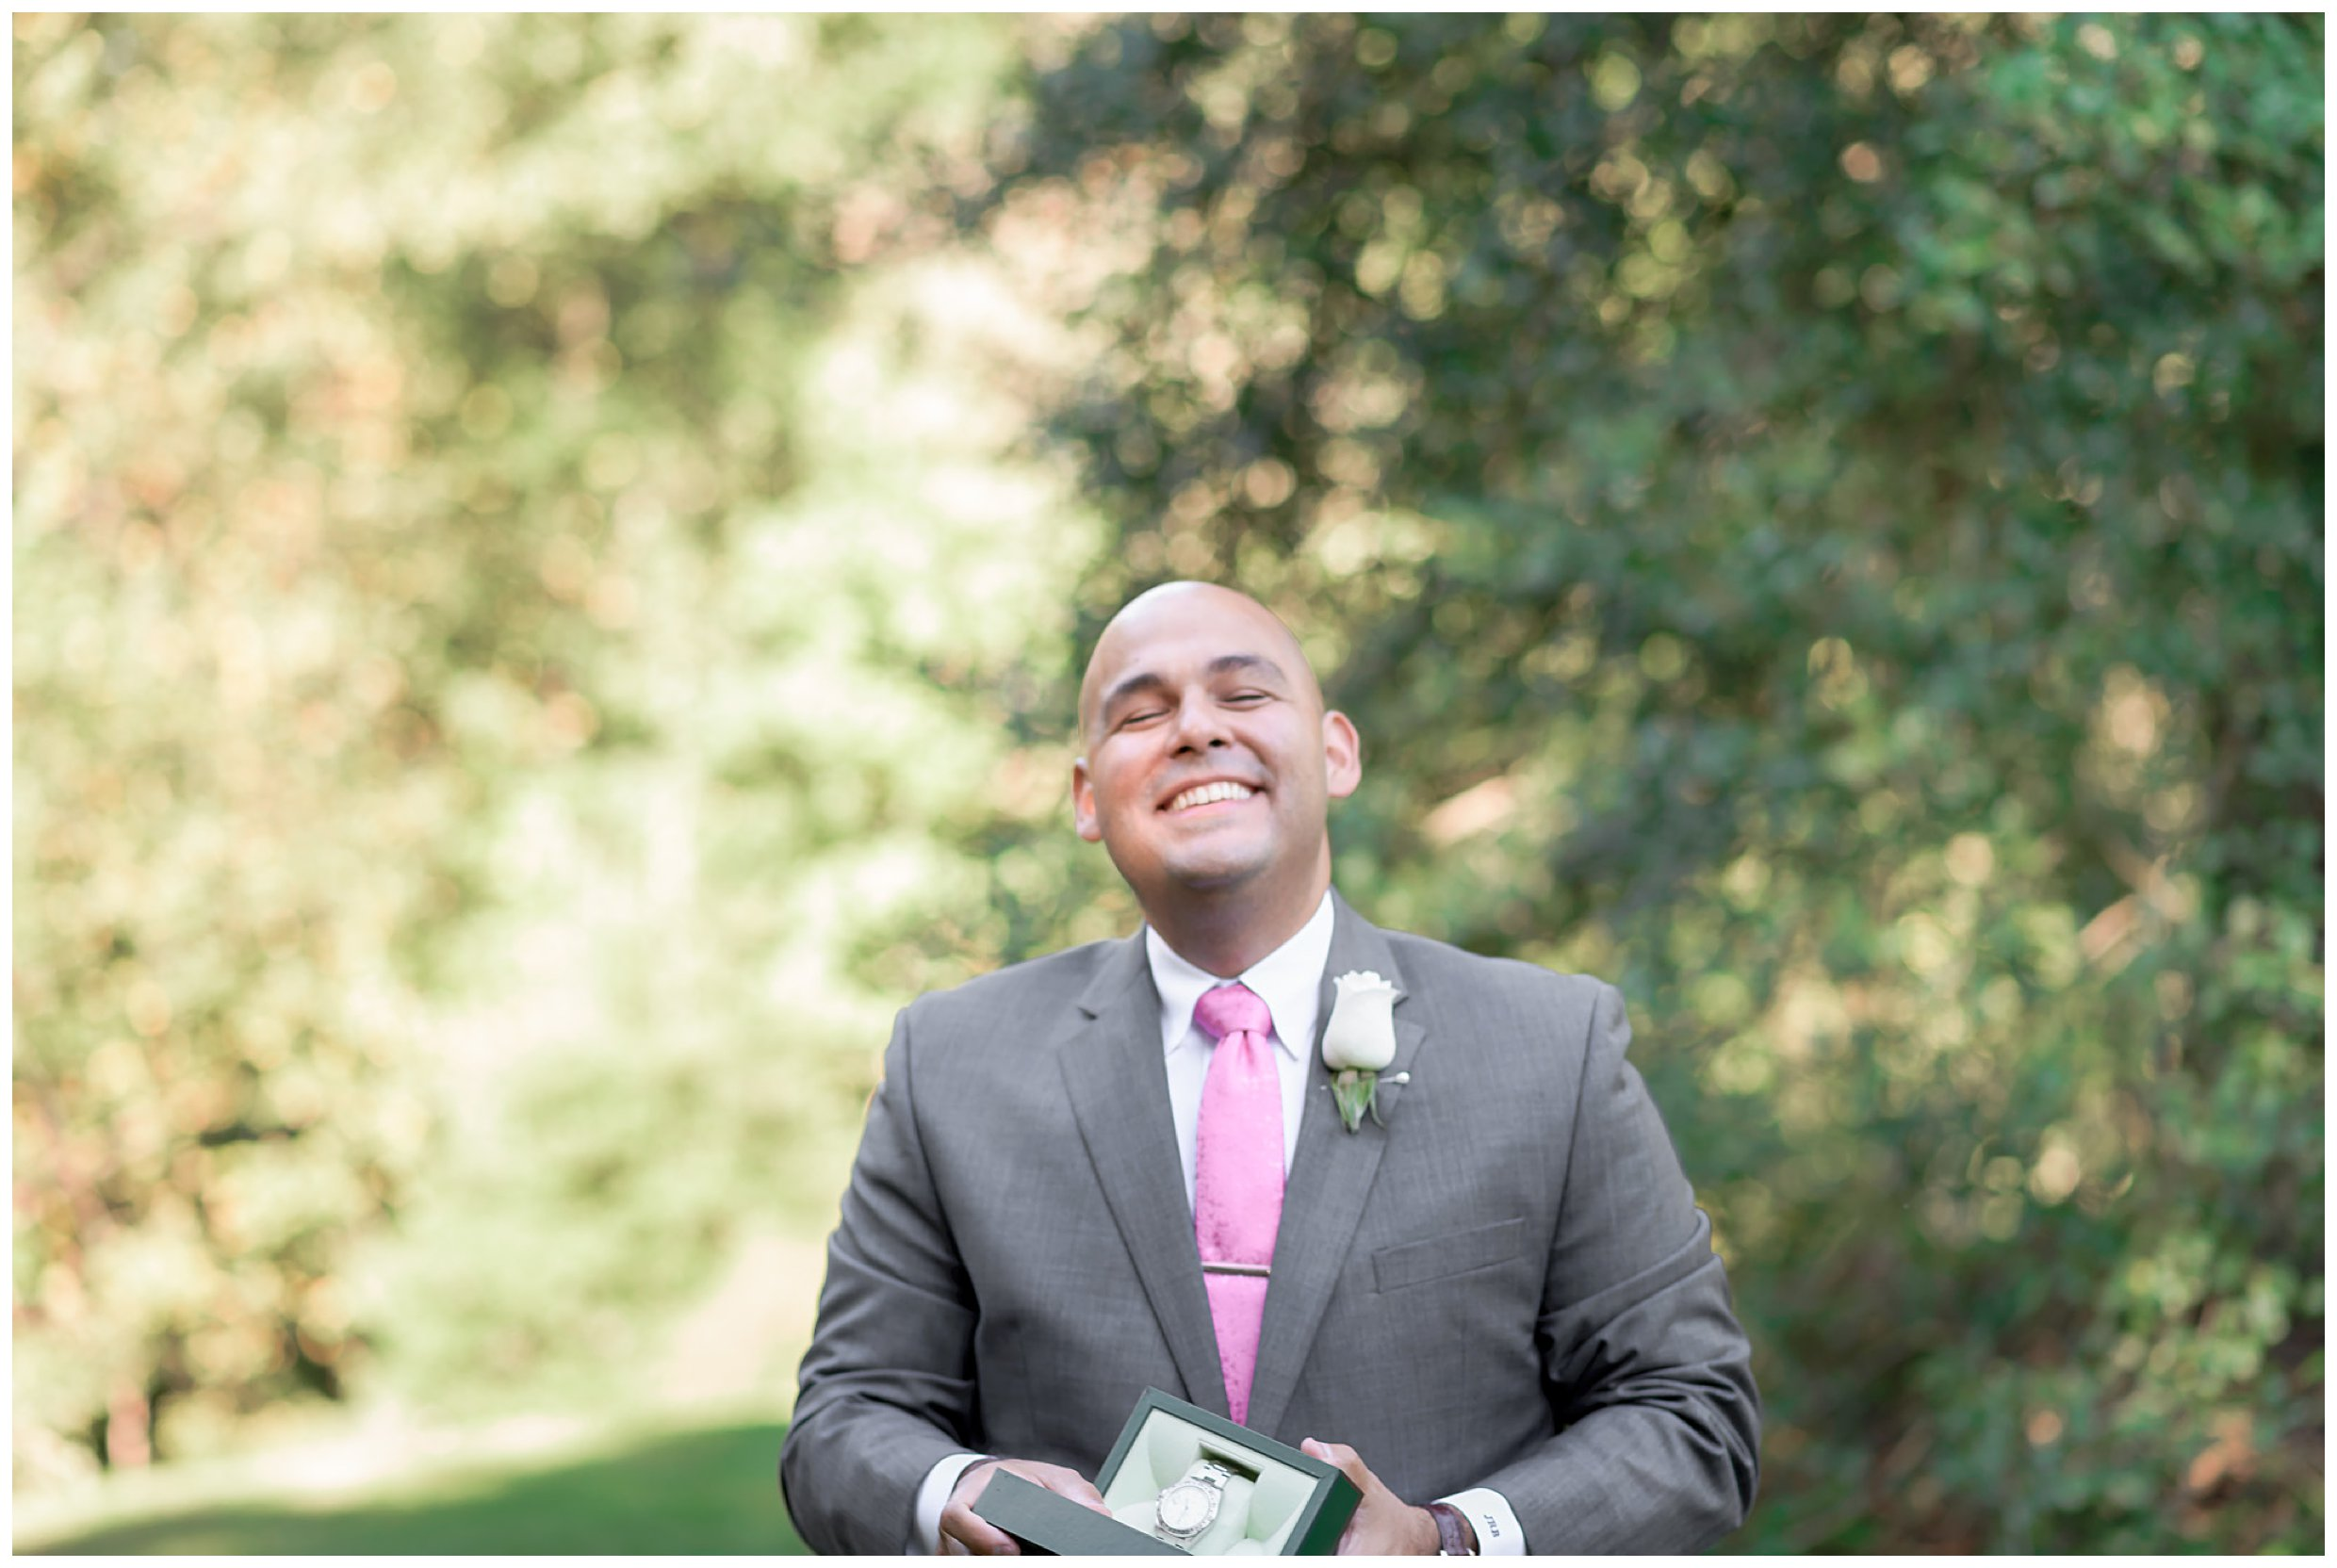 Jose-and-Jacqui-Hendry-house-arlington-virginia-wedding-photographer-charleston-south carolina-wedding-photographer-navy-blue-pink-sunset-wedding-outdoor-earthy-eco-friendly-photographer-viginia wedding--315.jpg